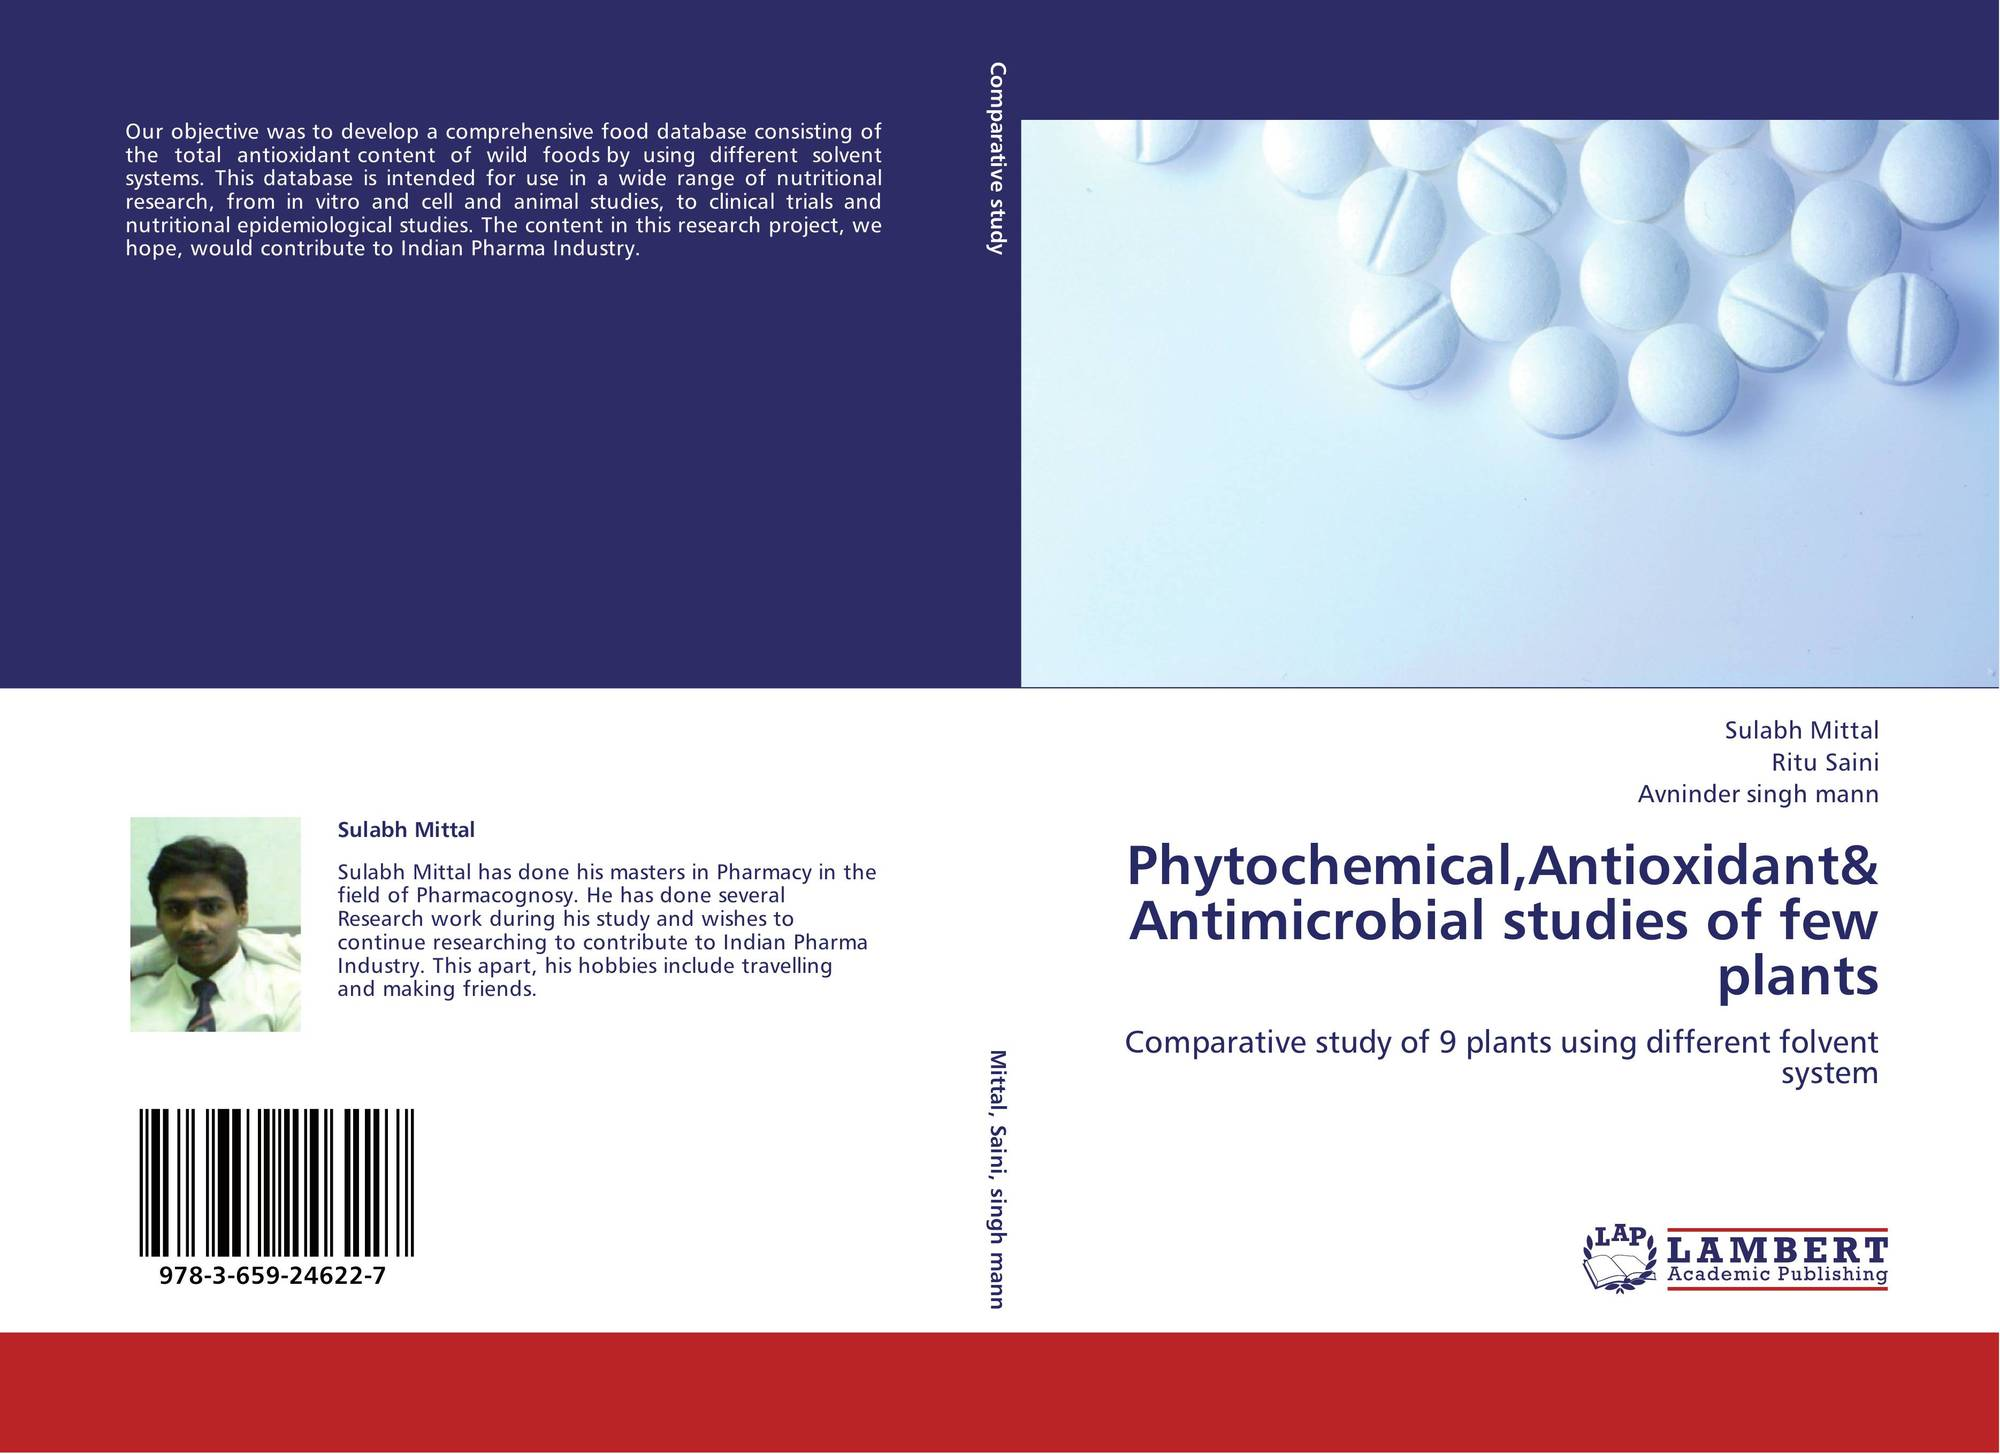 phytochemical and antimicrobial study of laptedenia Indica was used for study the phytochemicals many phytochemicals have antimicrobial activity and reduce the risk of many diseases.